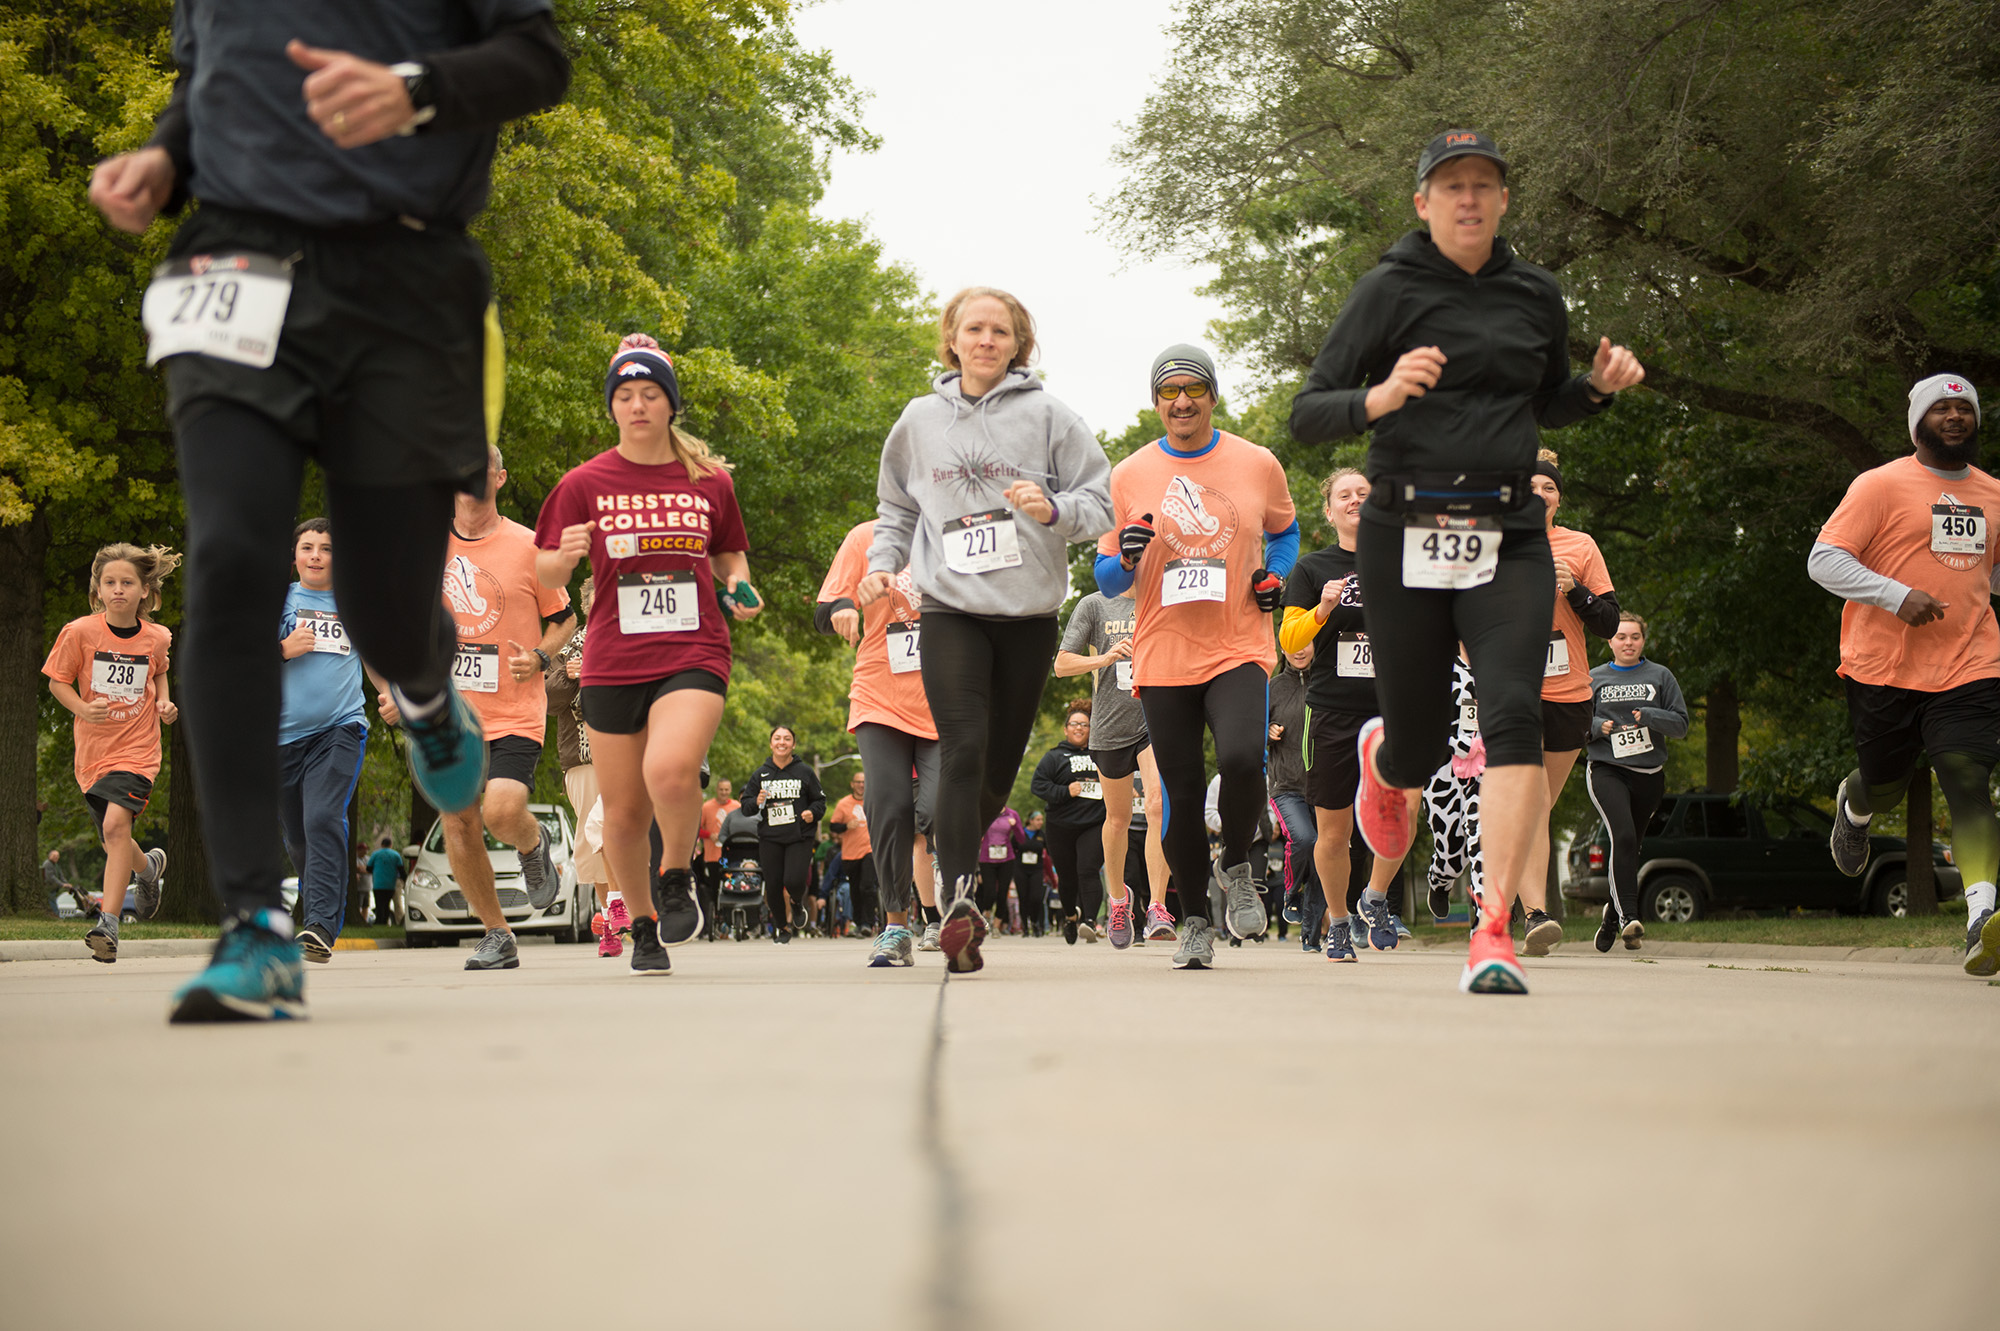 Runners at the start of the 27th annual Manickam Mosey